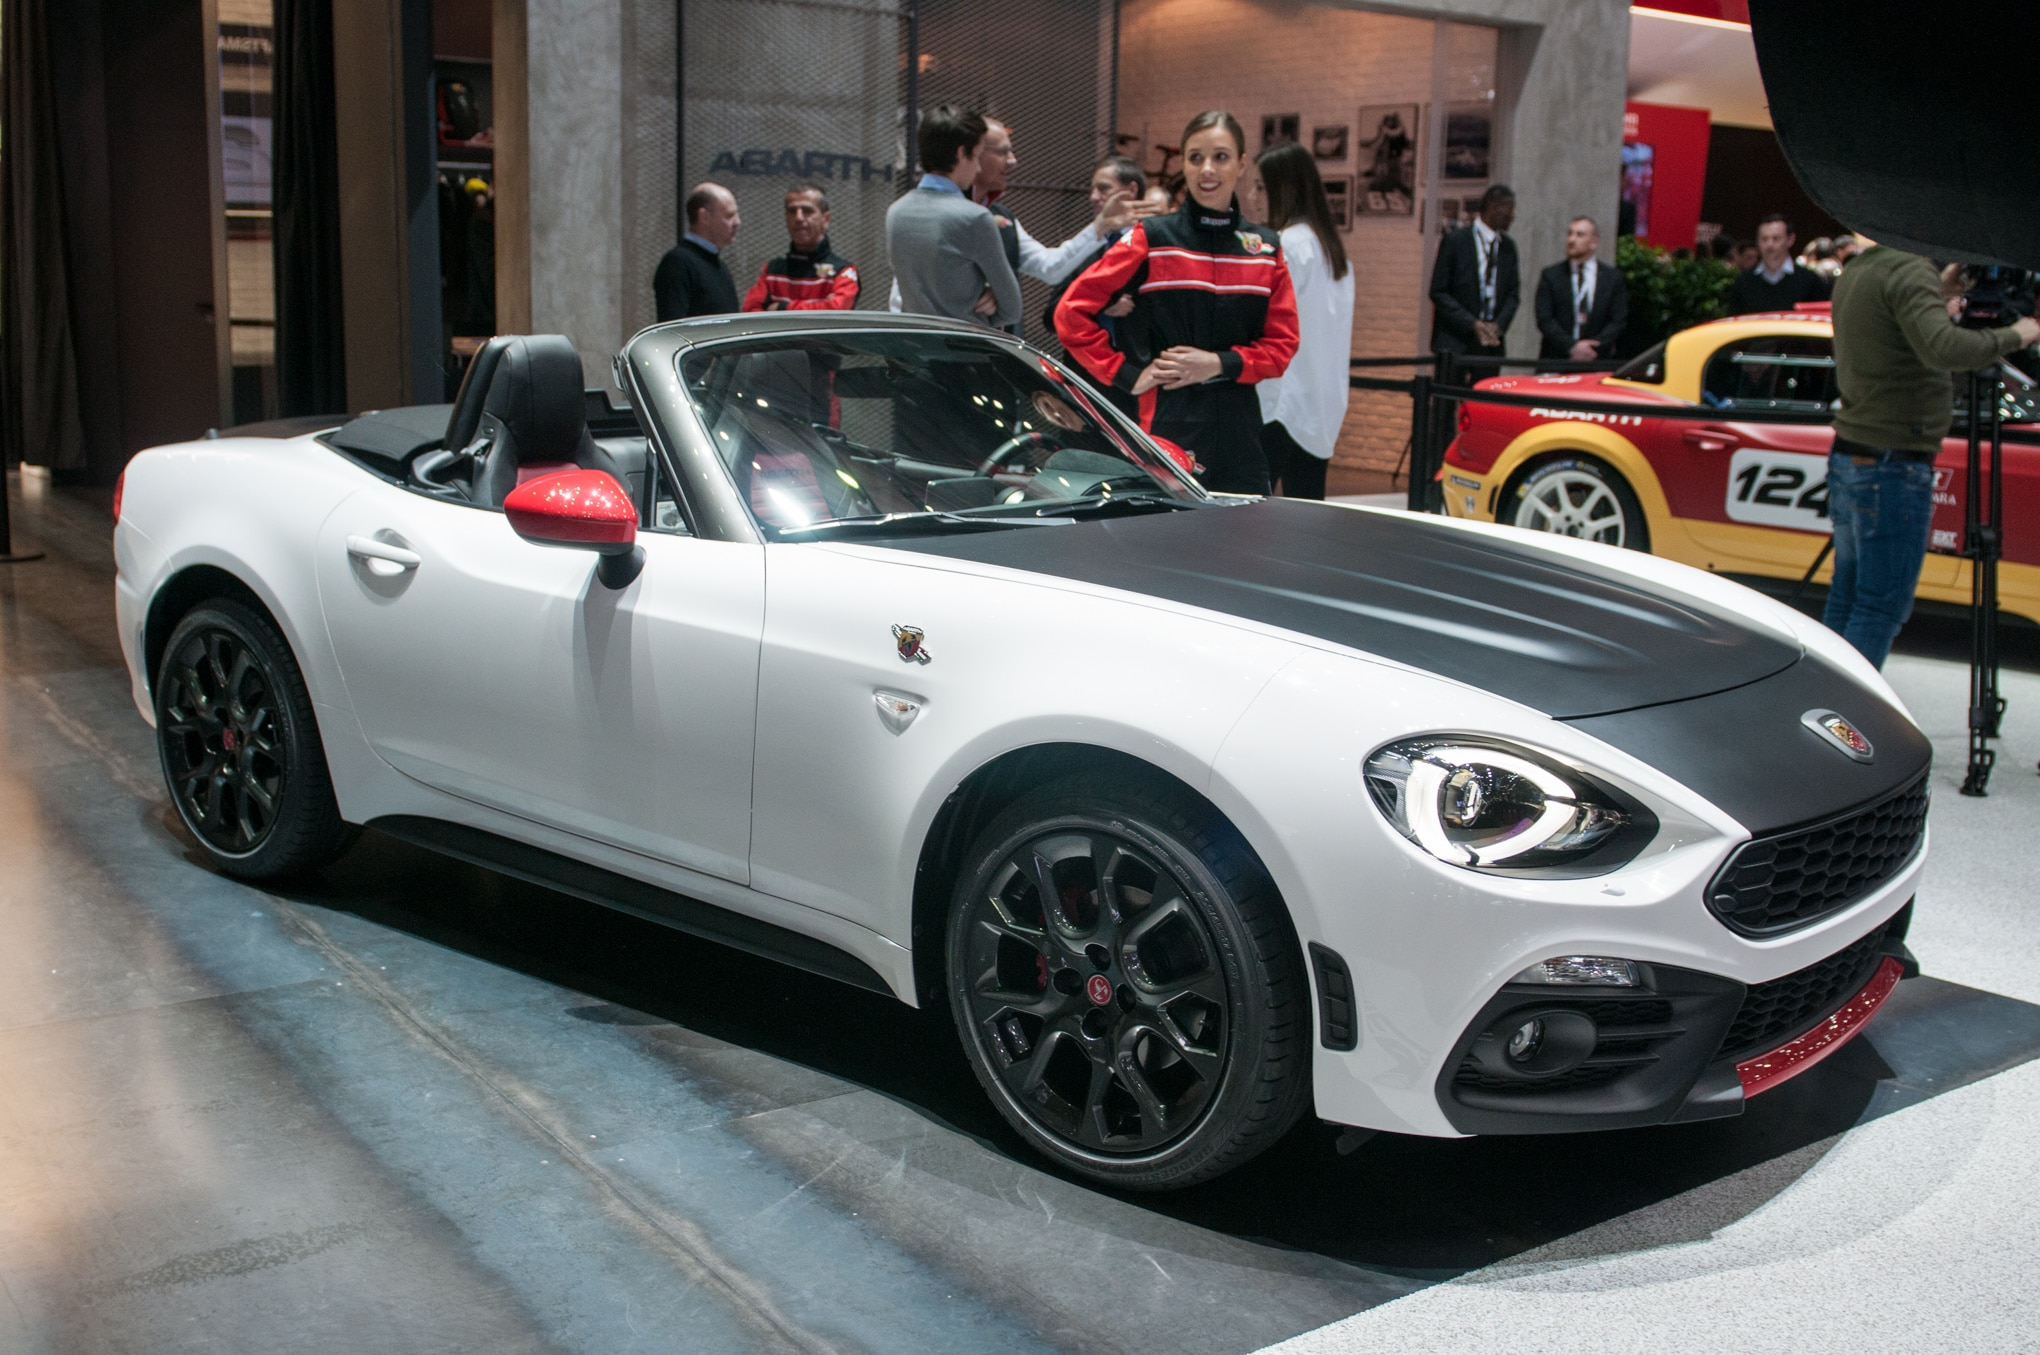 The Fiat Abarth 124 Spider is a great girl car.